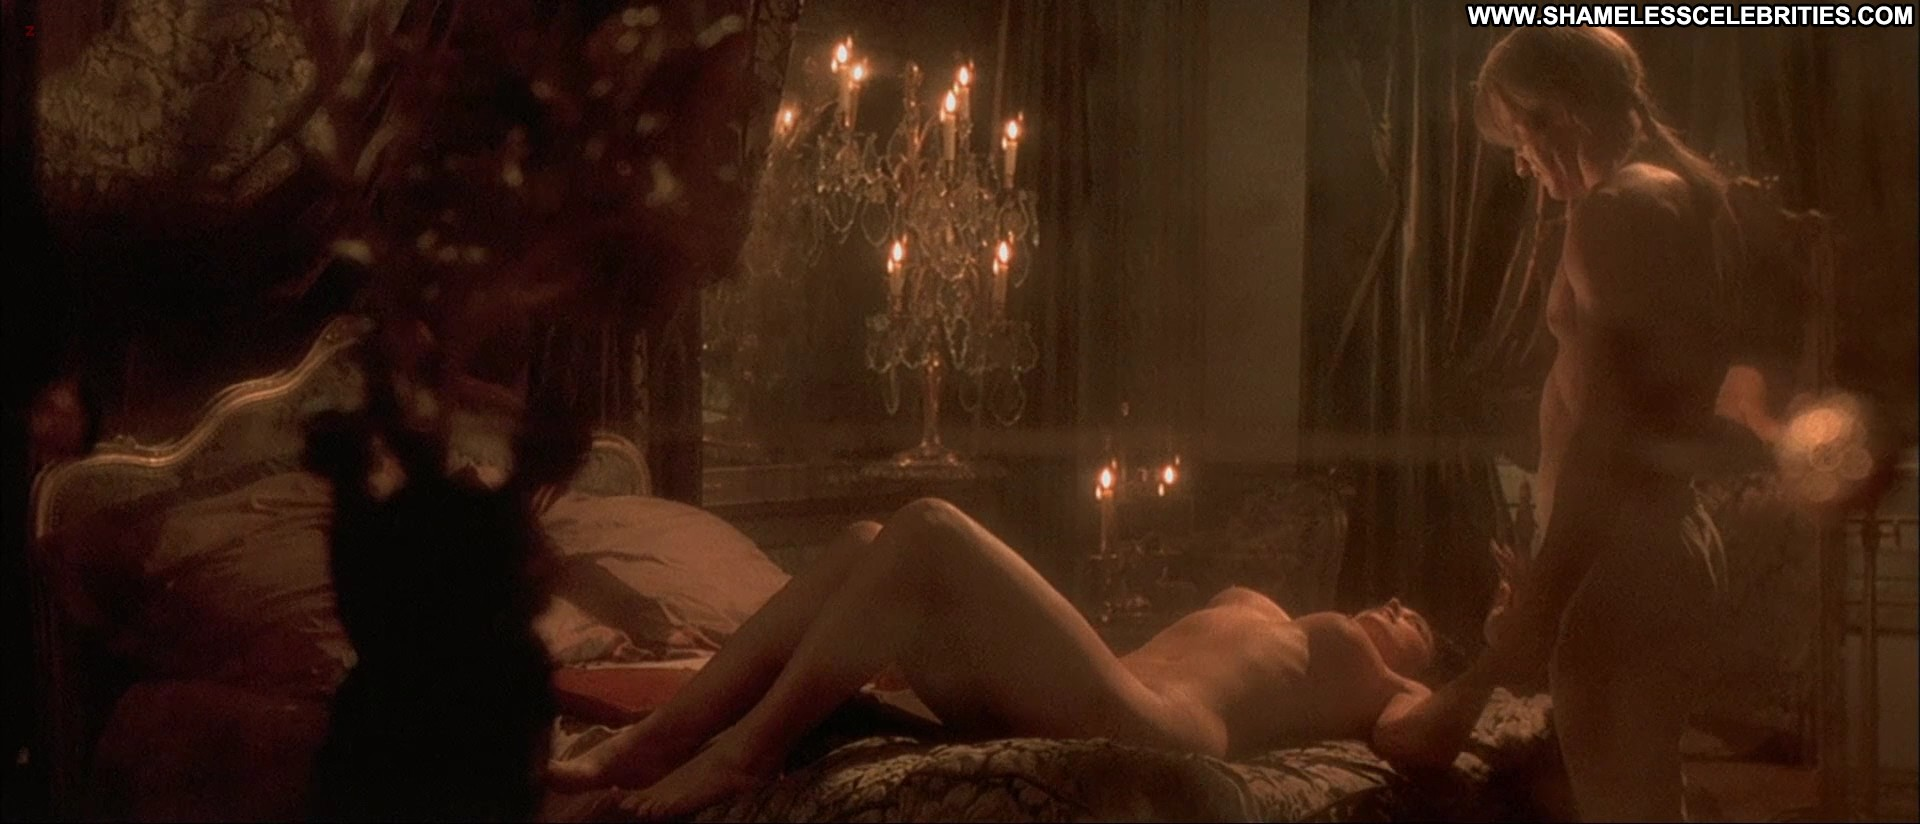 Monica bellucci in brotherhood of the wolf scandalplanetcom